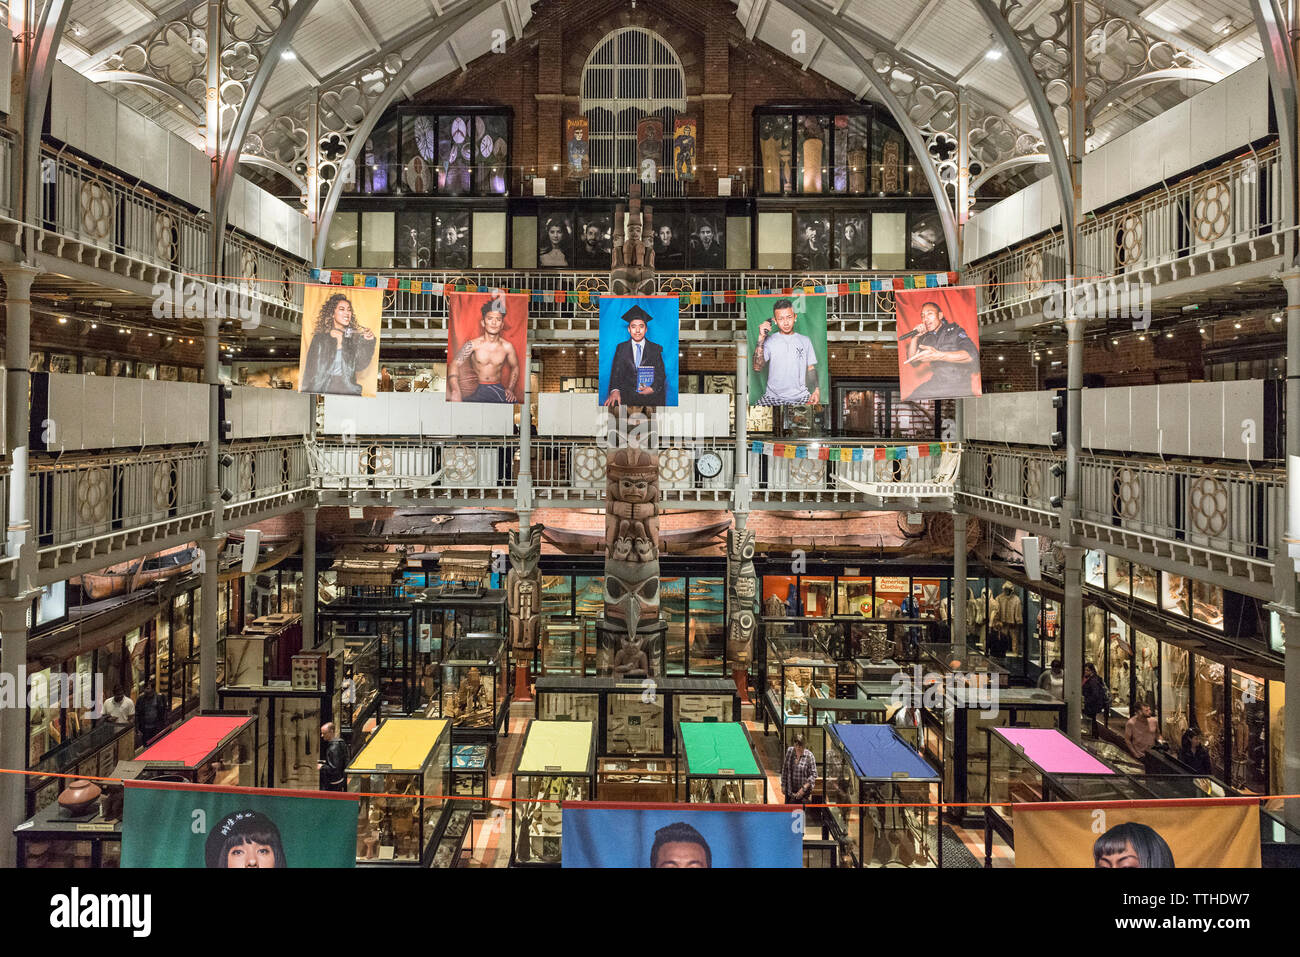 The Pitt Rivers Museum, Oxford, UK. A world famous collection of items relating tp ethnography, anthropology and archaeology, founded in 1884 - Stock Image